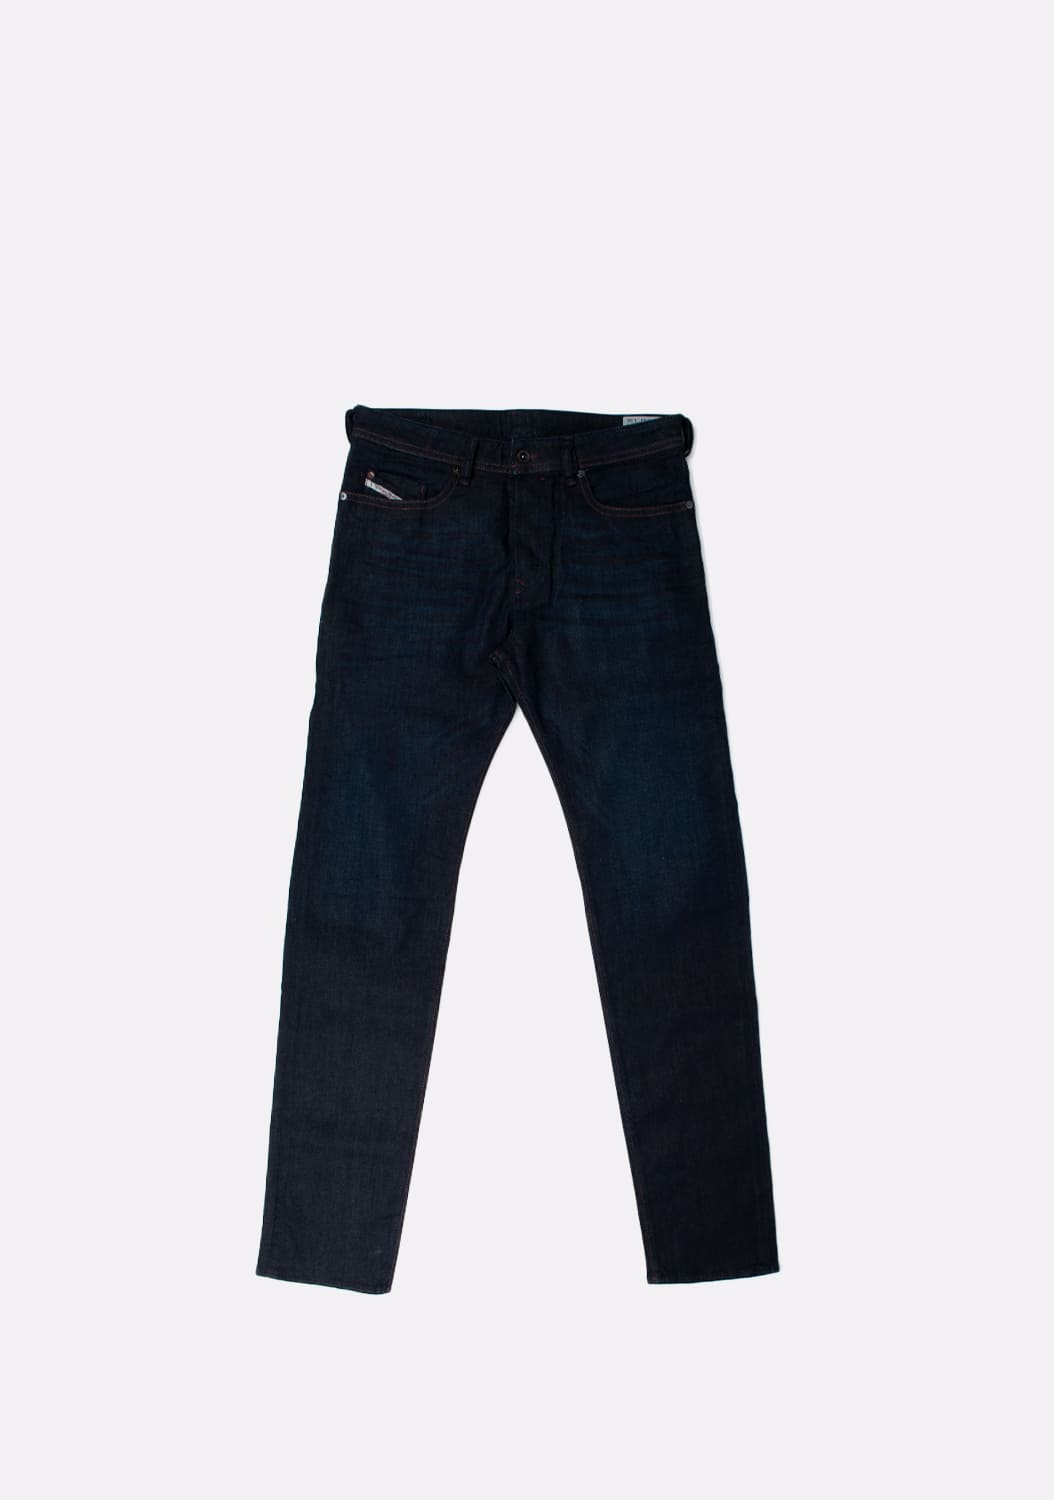 Diesel-Buster-0845G-Stretch-Regular-Slim-Tapered-melyni-dzinsai-dydis-33-34 (2)